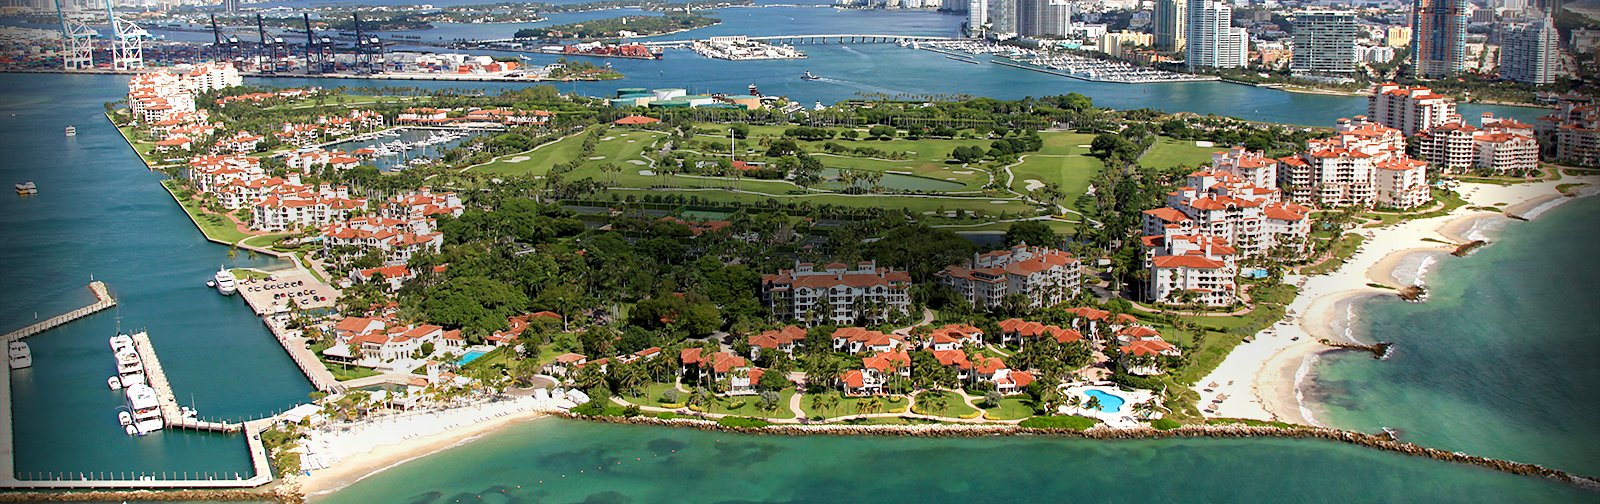 hero-other-area-fisher-island